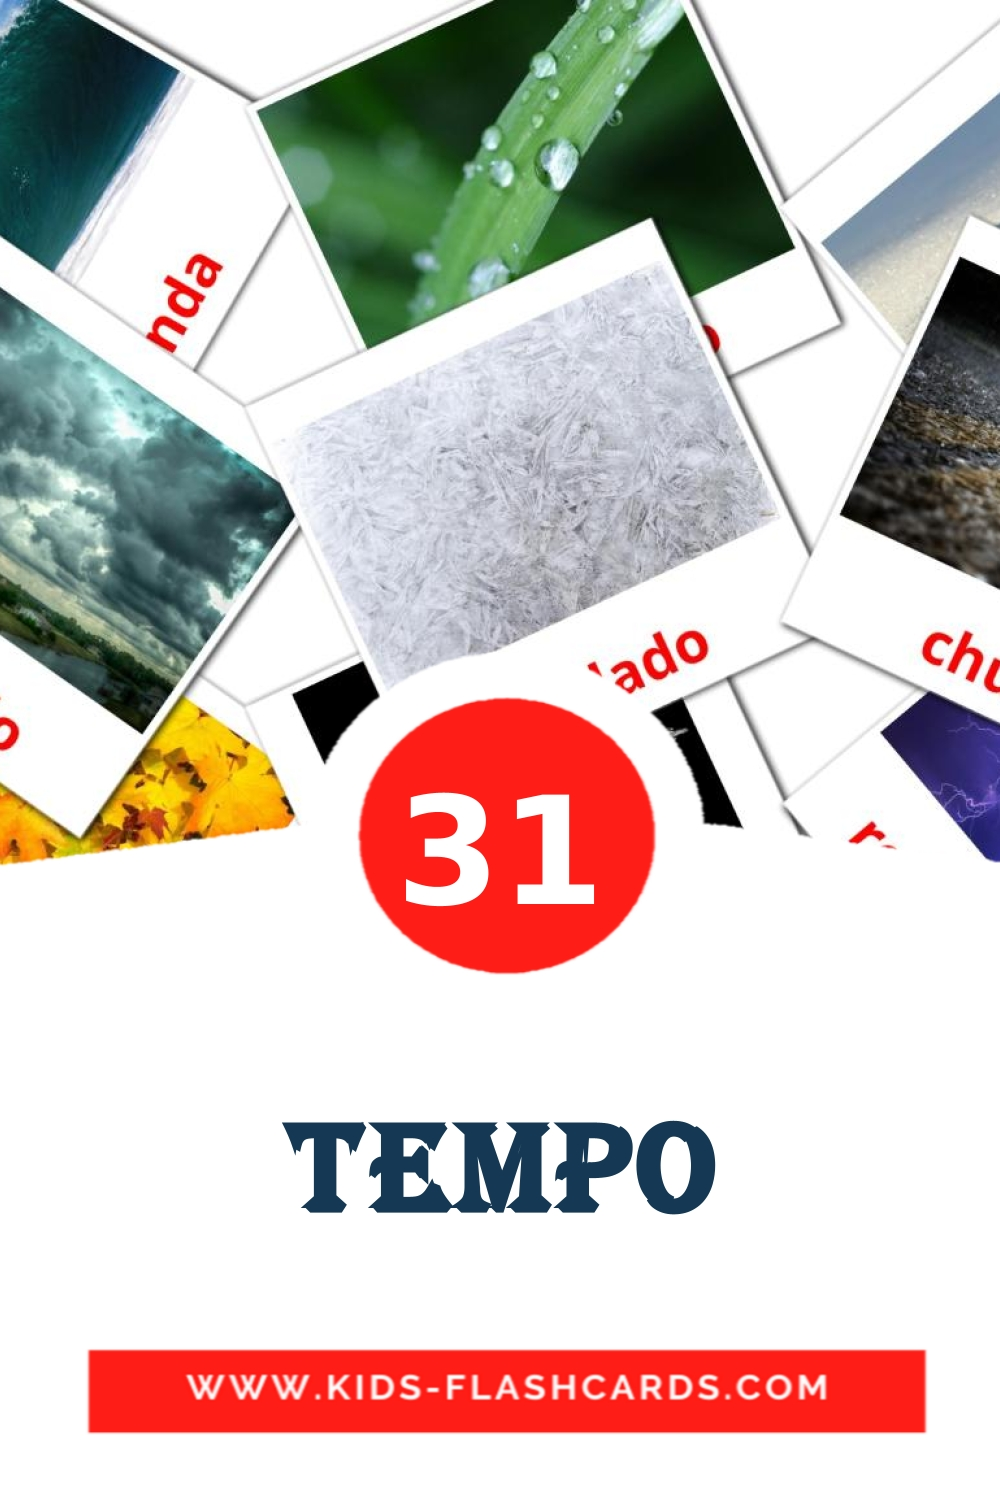 31 Tempo Picture Cards for Kindergarden in portuguese